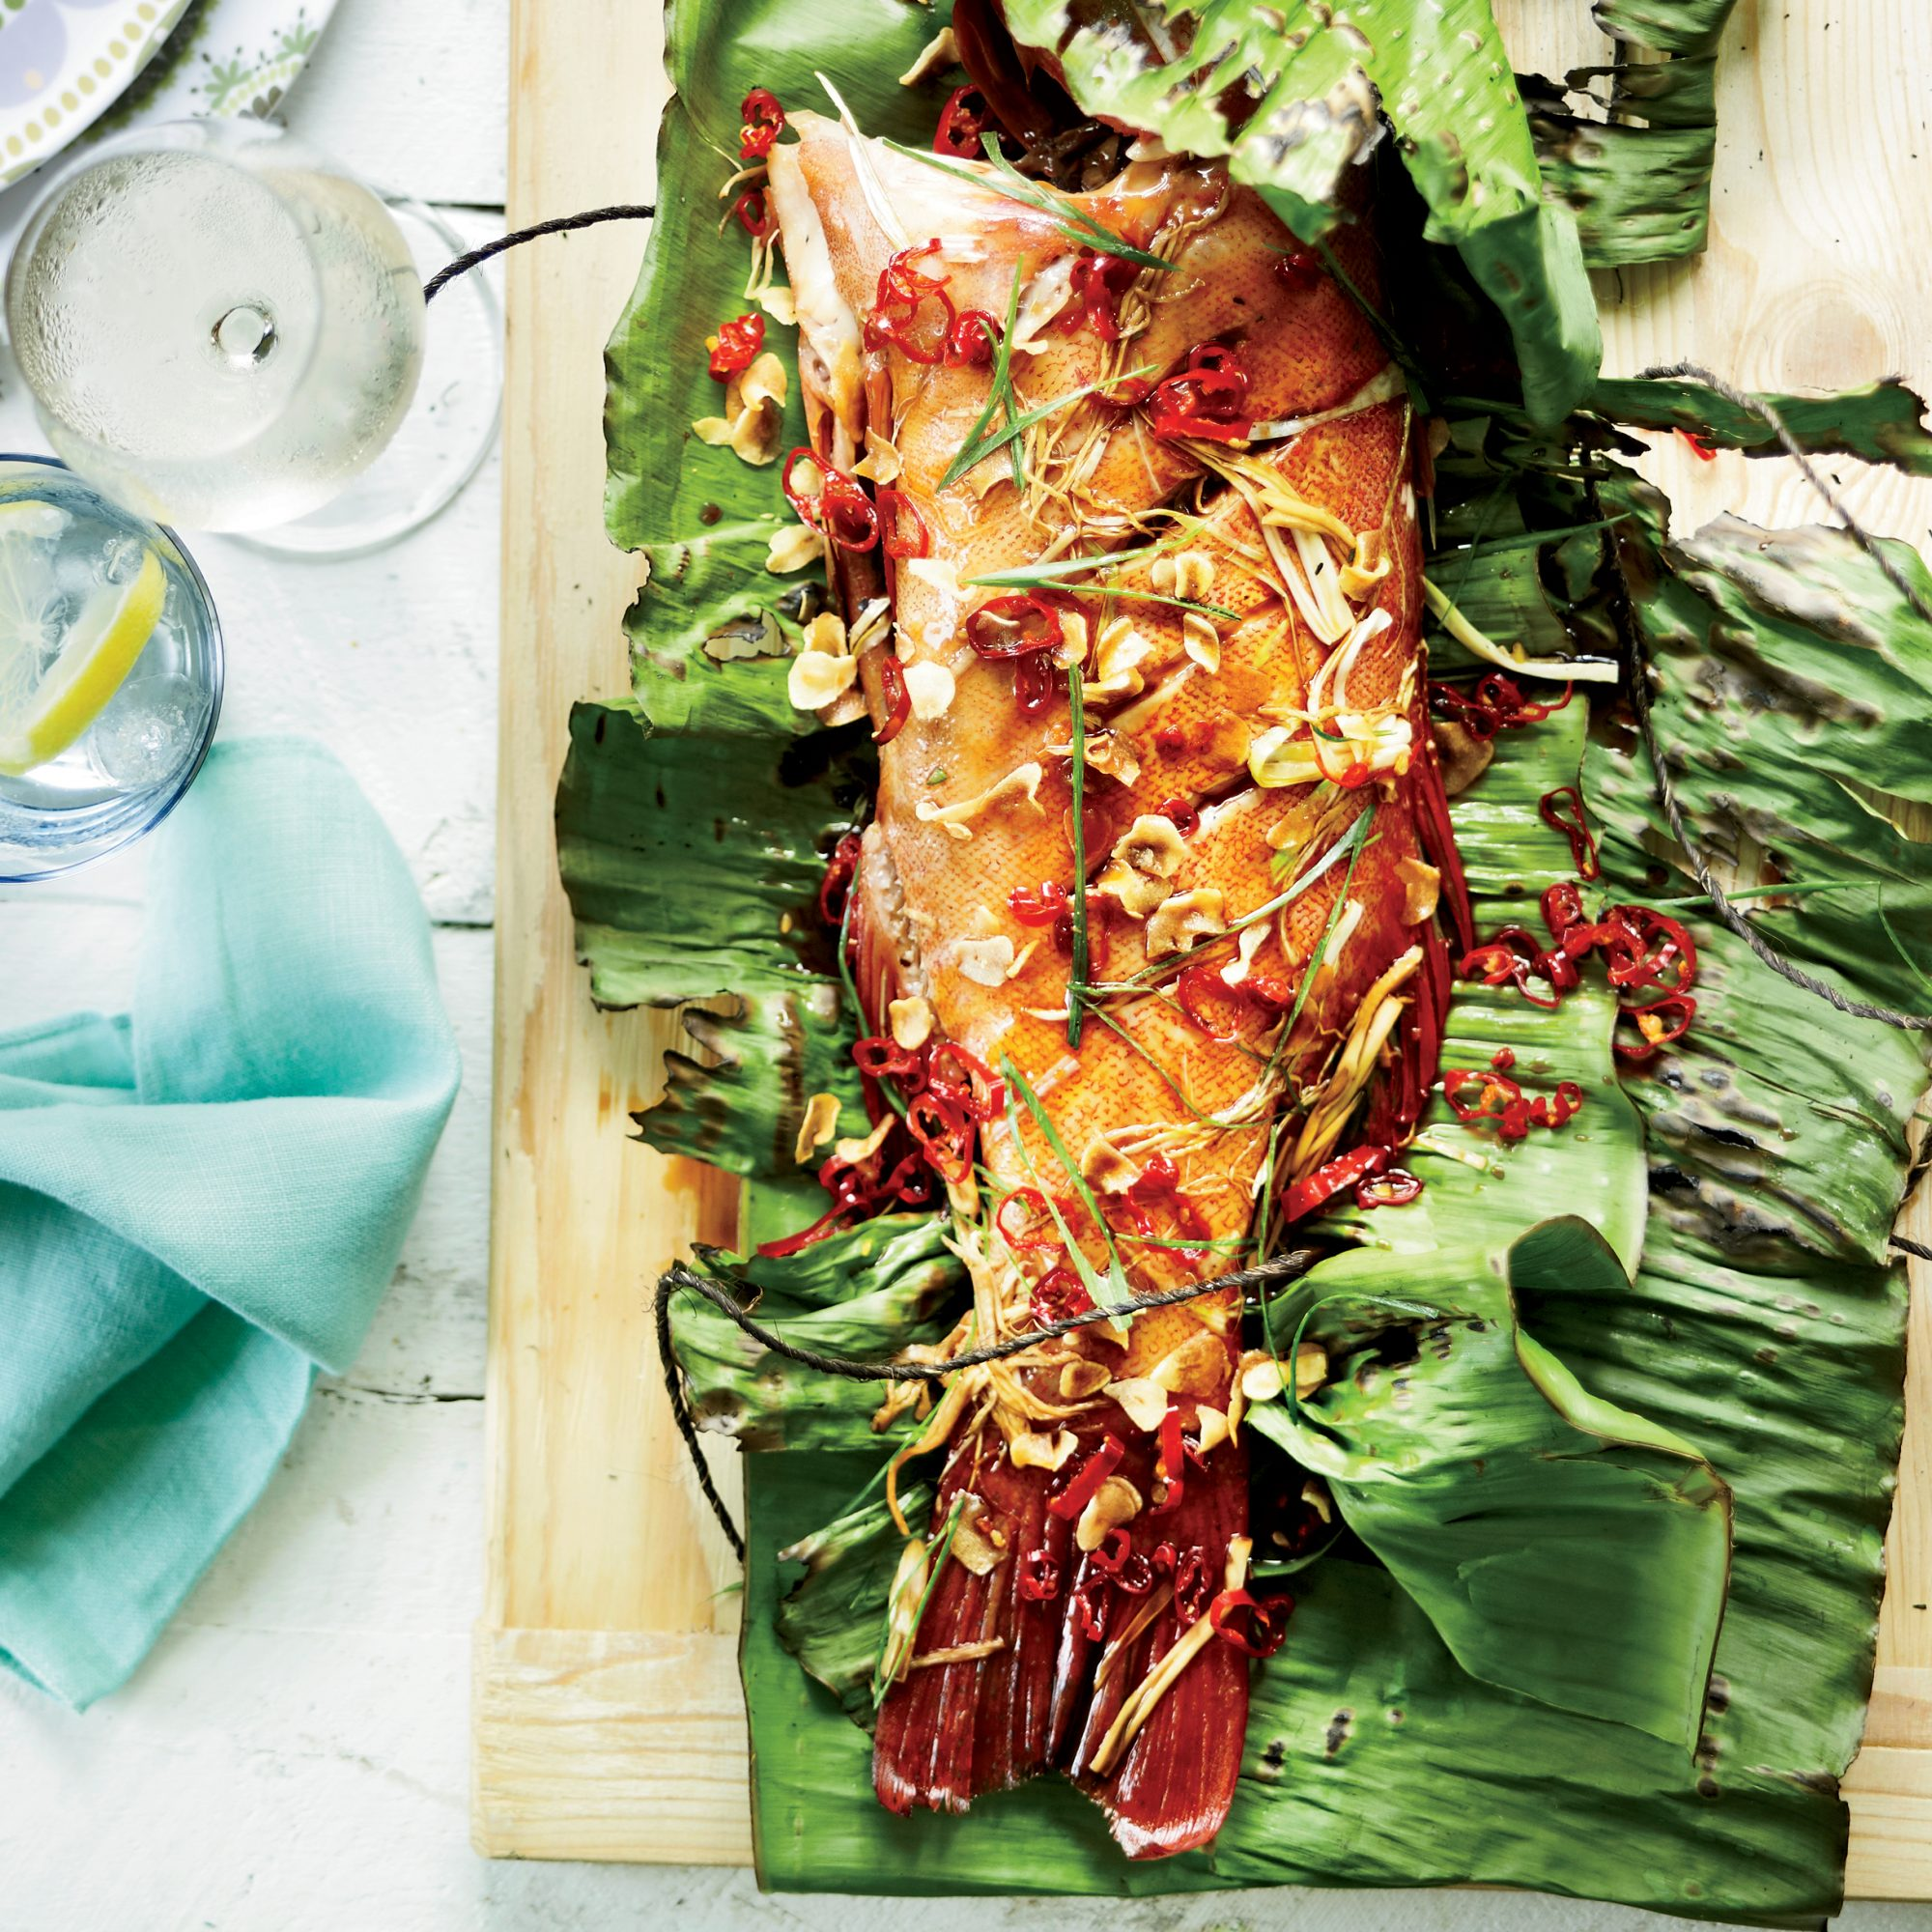 How to Clean Fish: Recipes for Whole Fish